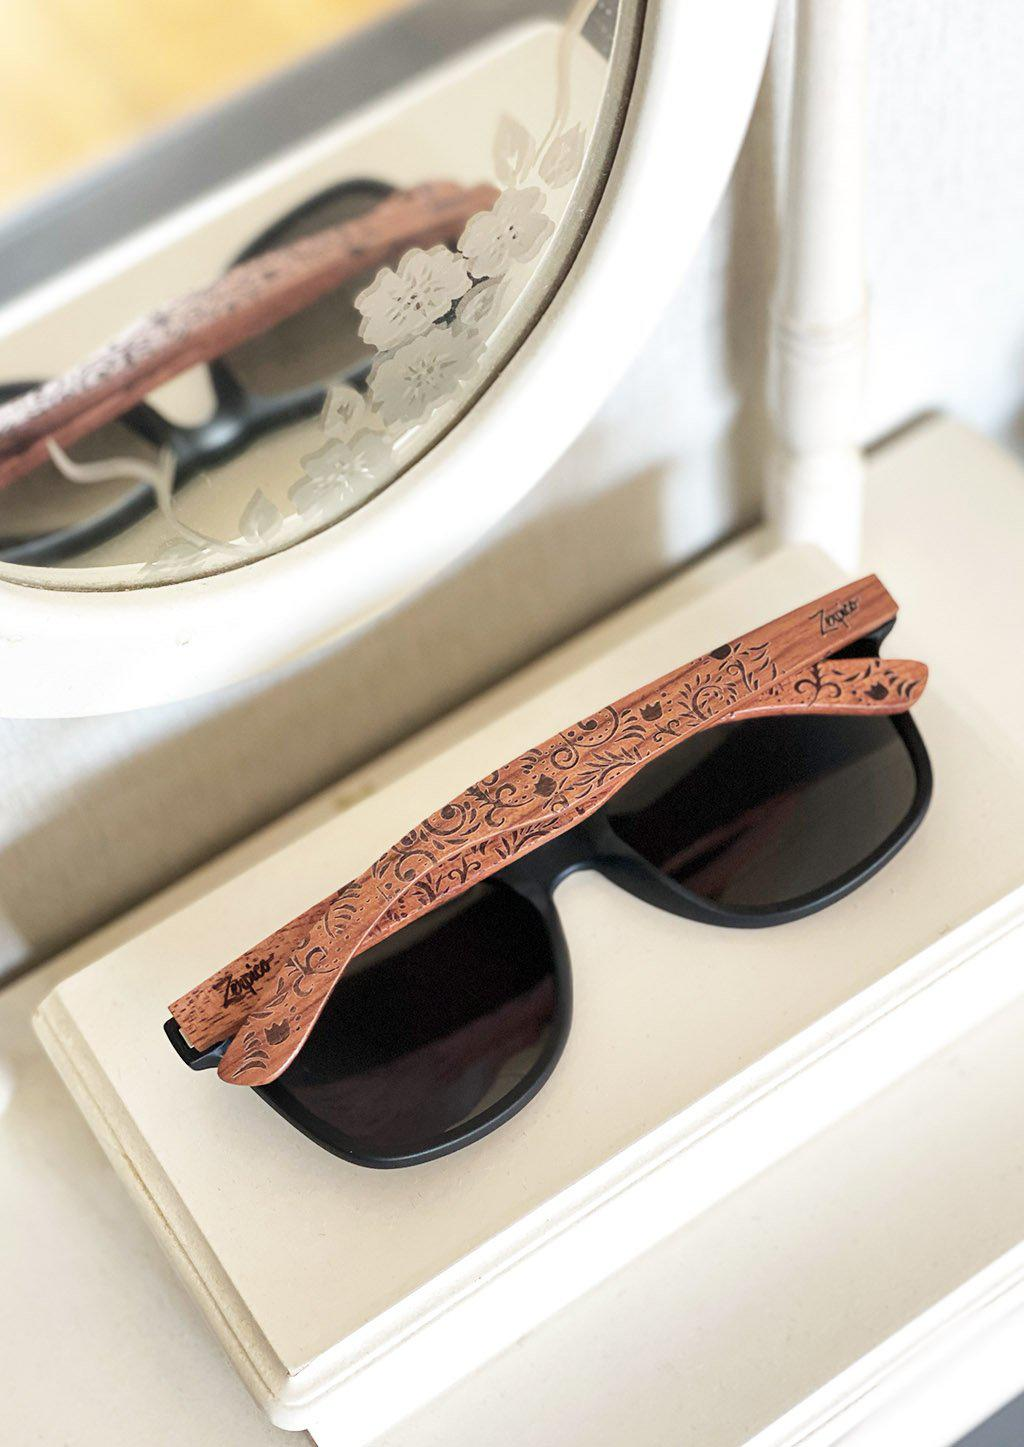 Engraved wood sunglasses from Zerpico. Oasis is handmade with floral pattern.